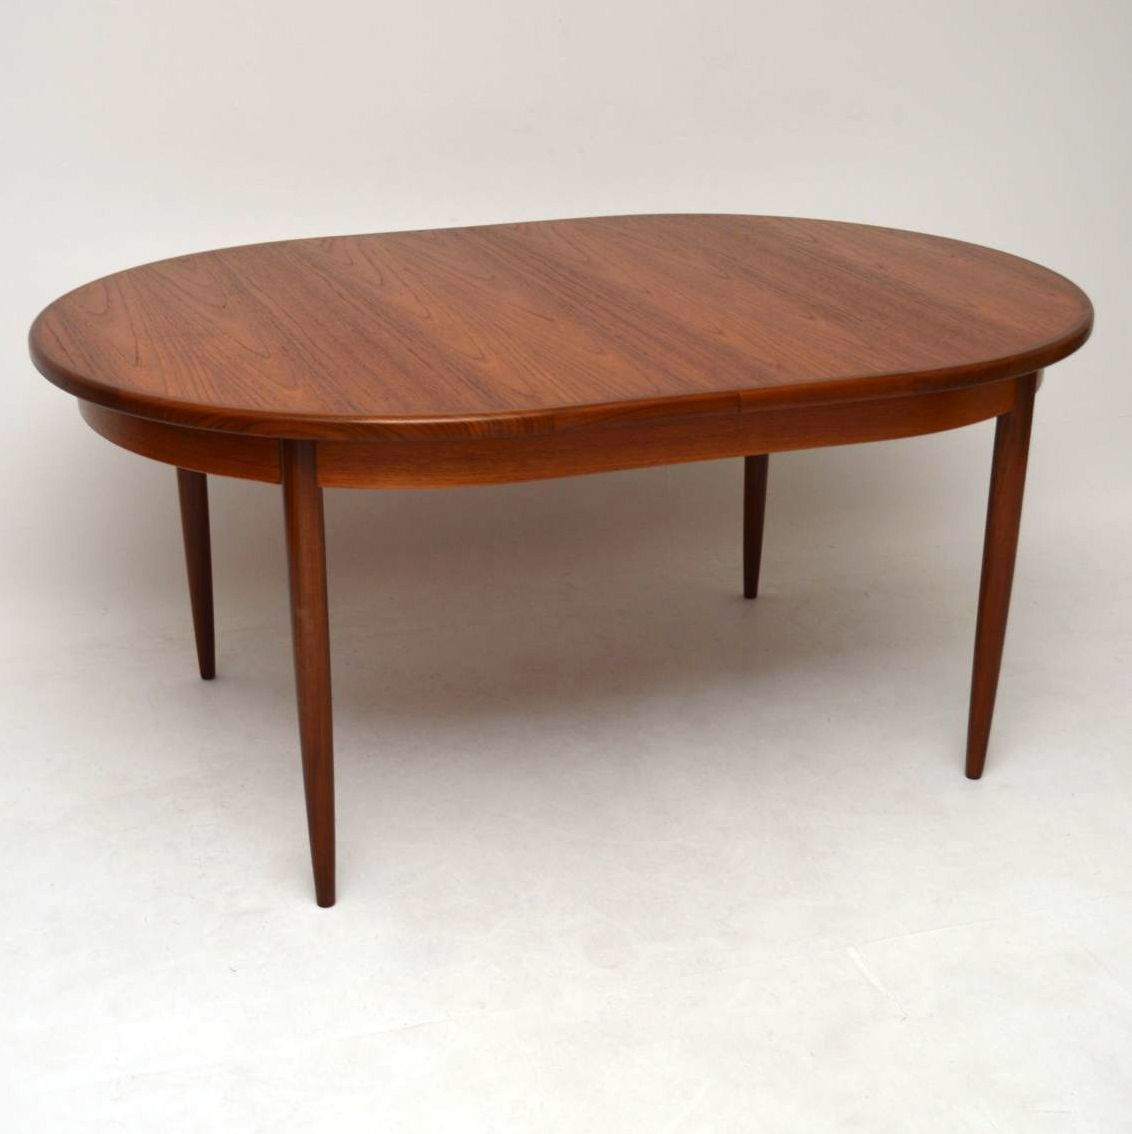 Retro Teak Dining Table Amp Six Chairs By G Plan Vintage